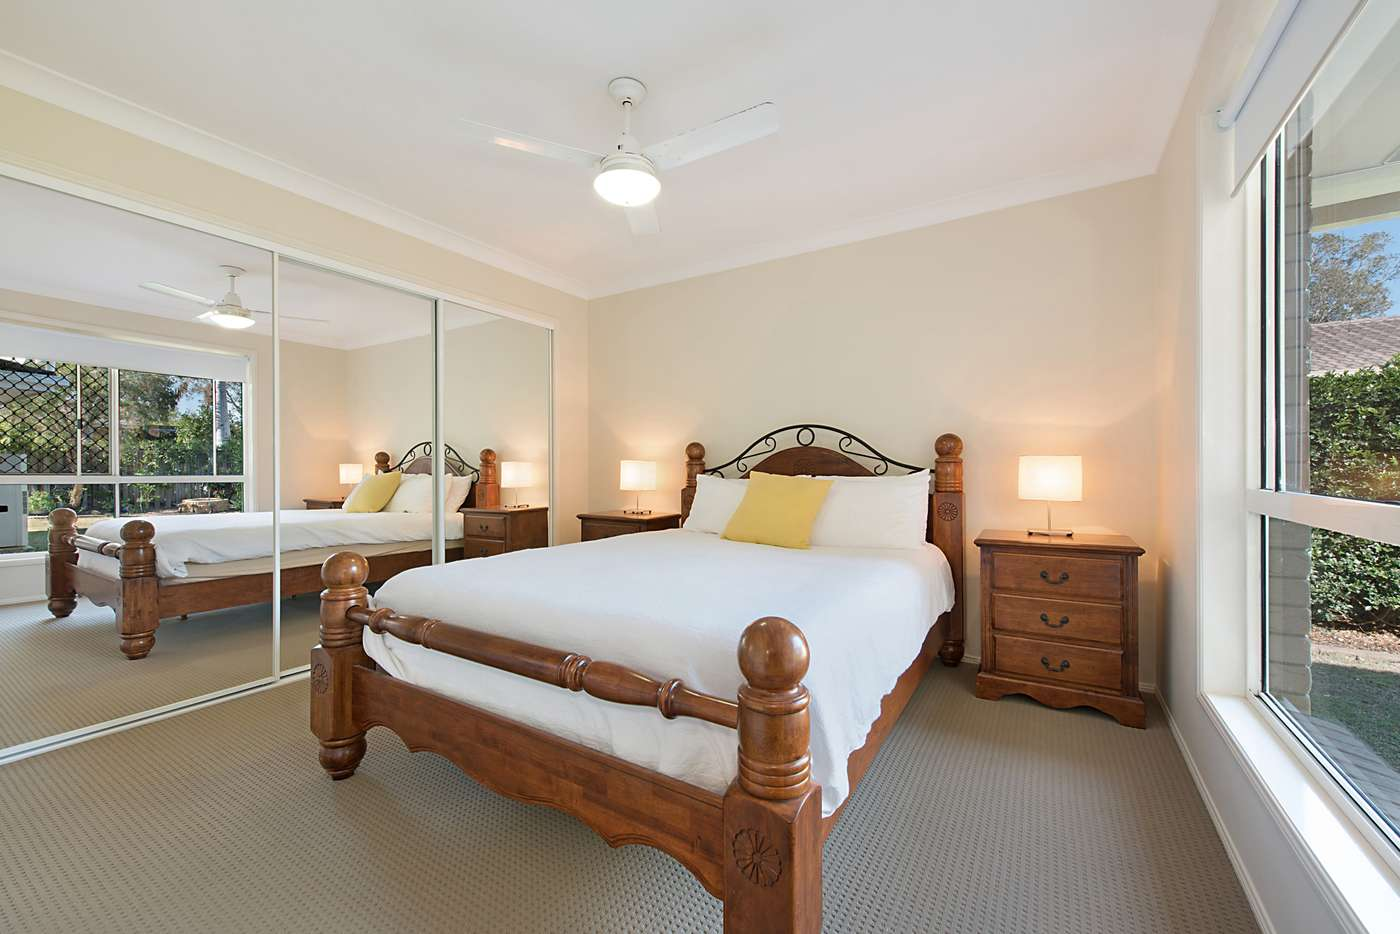 Sixth view of Homely house listing, 3 Padua Place, Boondall QLD 4034